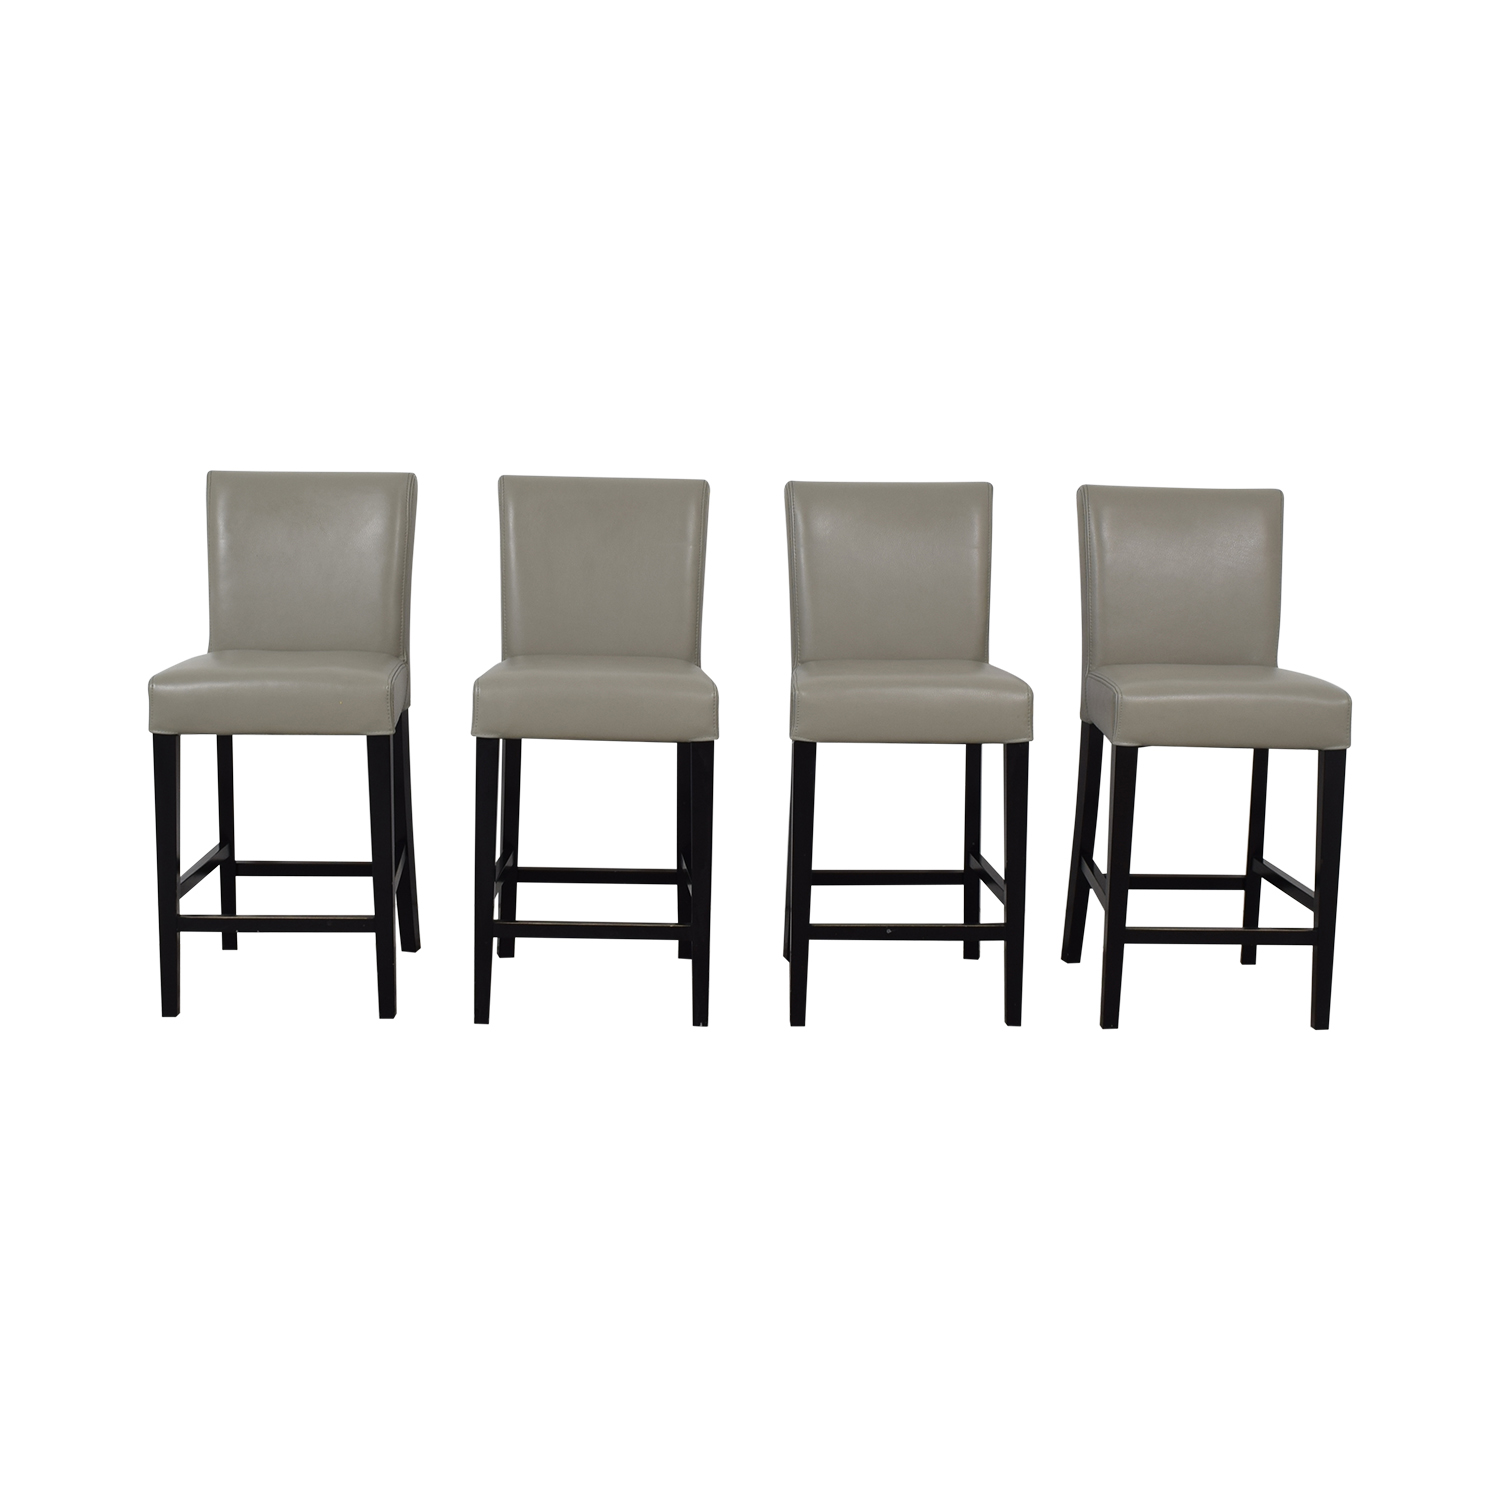 Grey Leather Stools Chairs